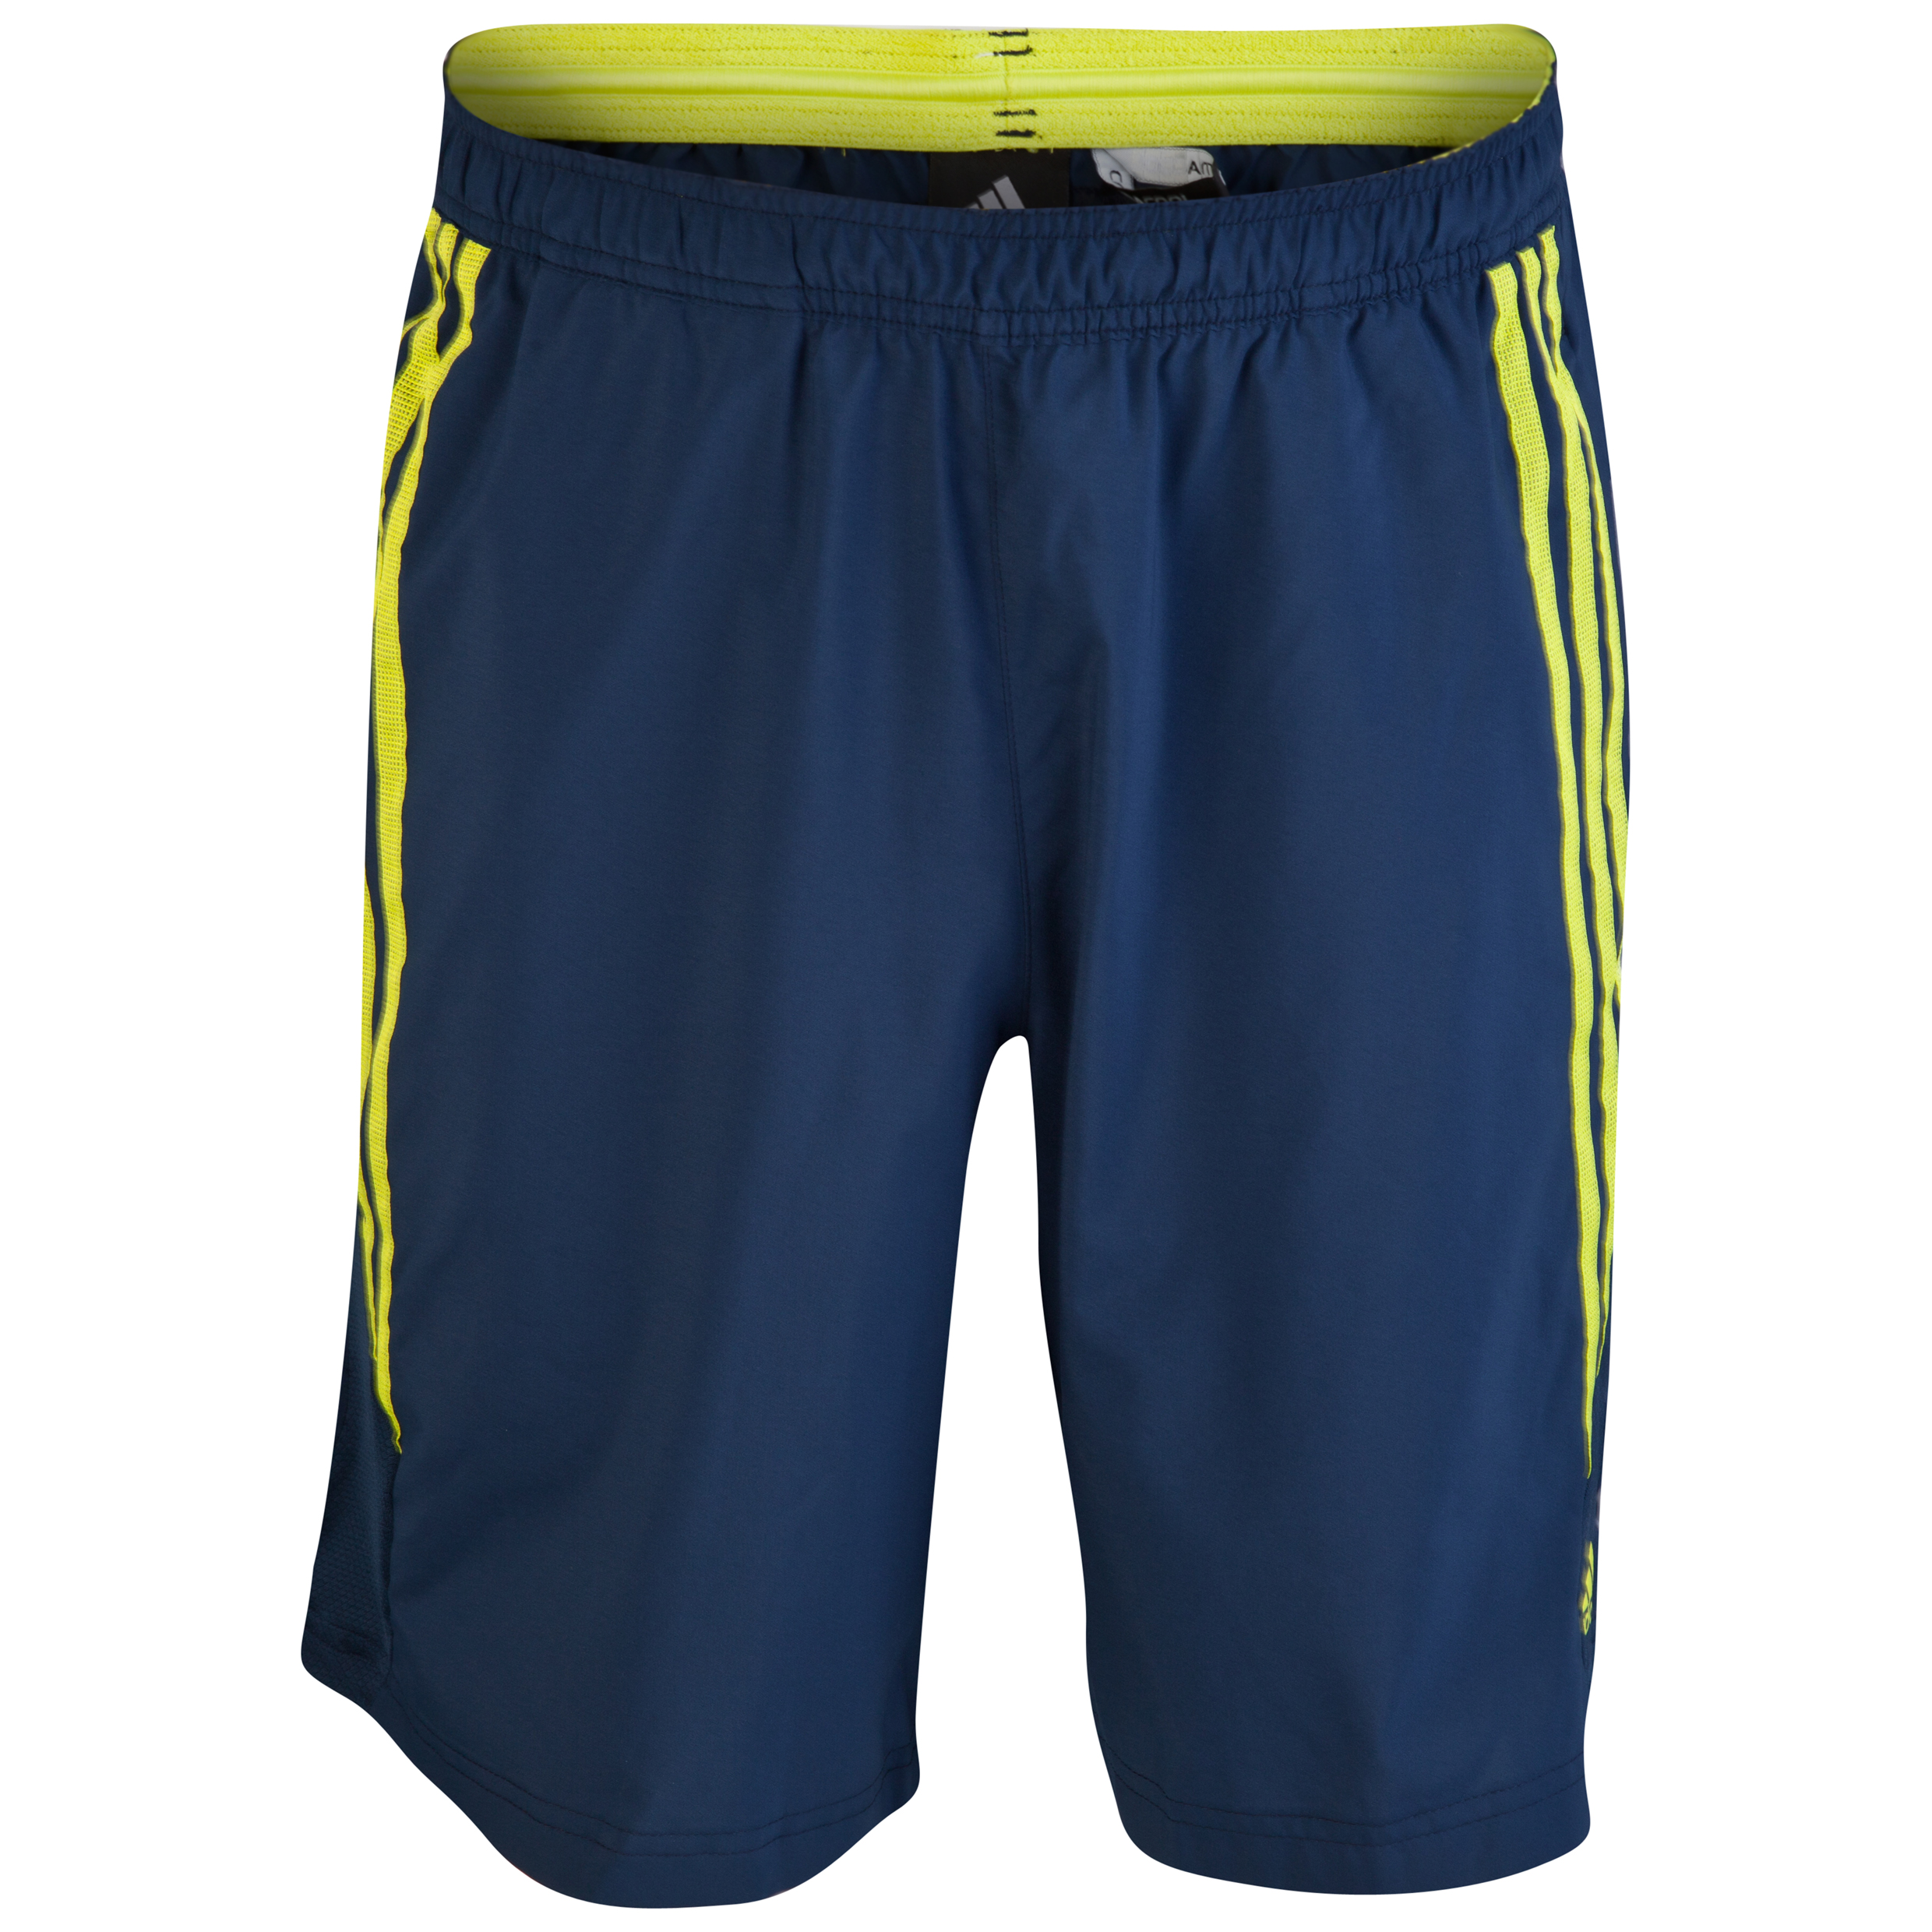 adidas Clima365 Short - Collegiate Navy